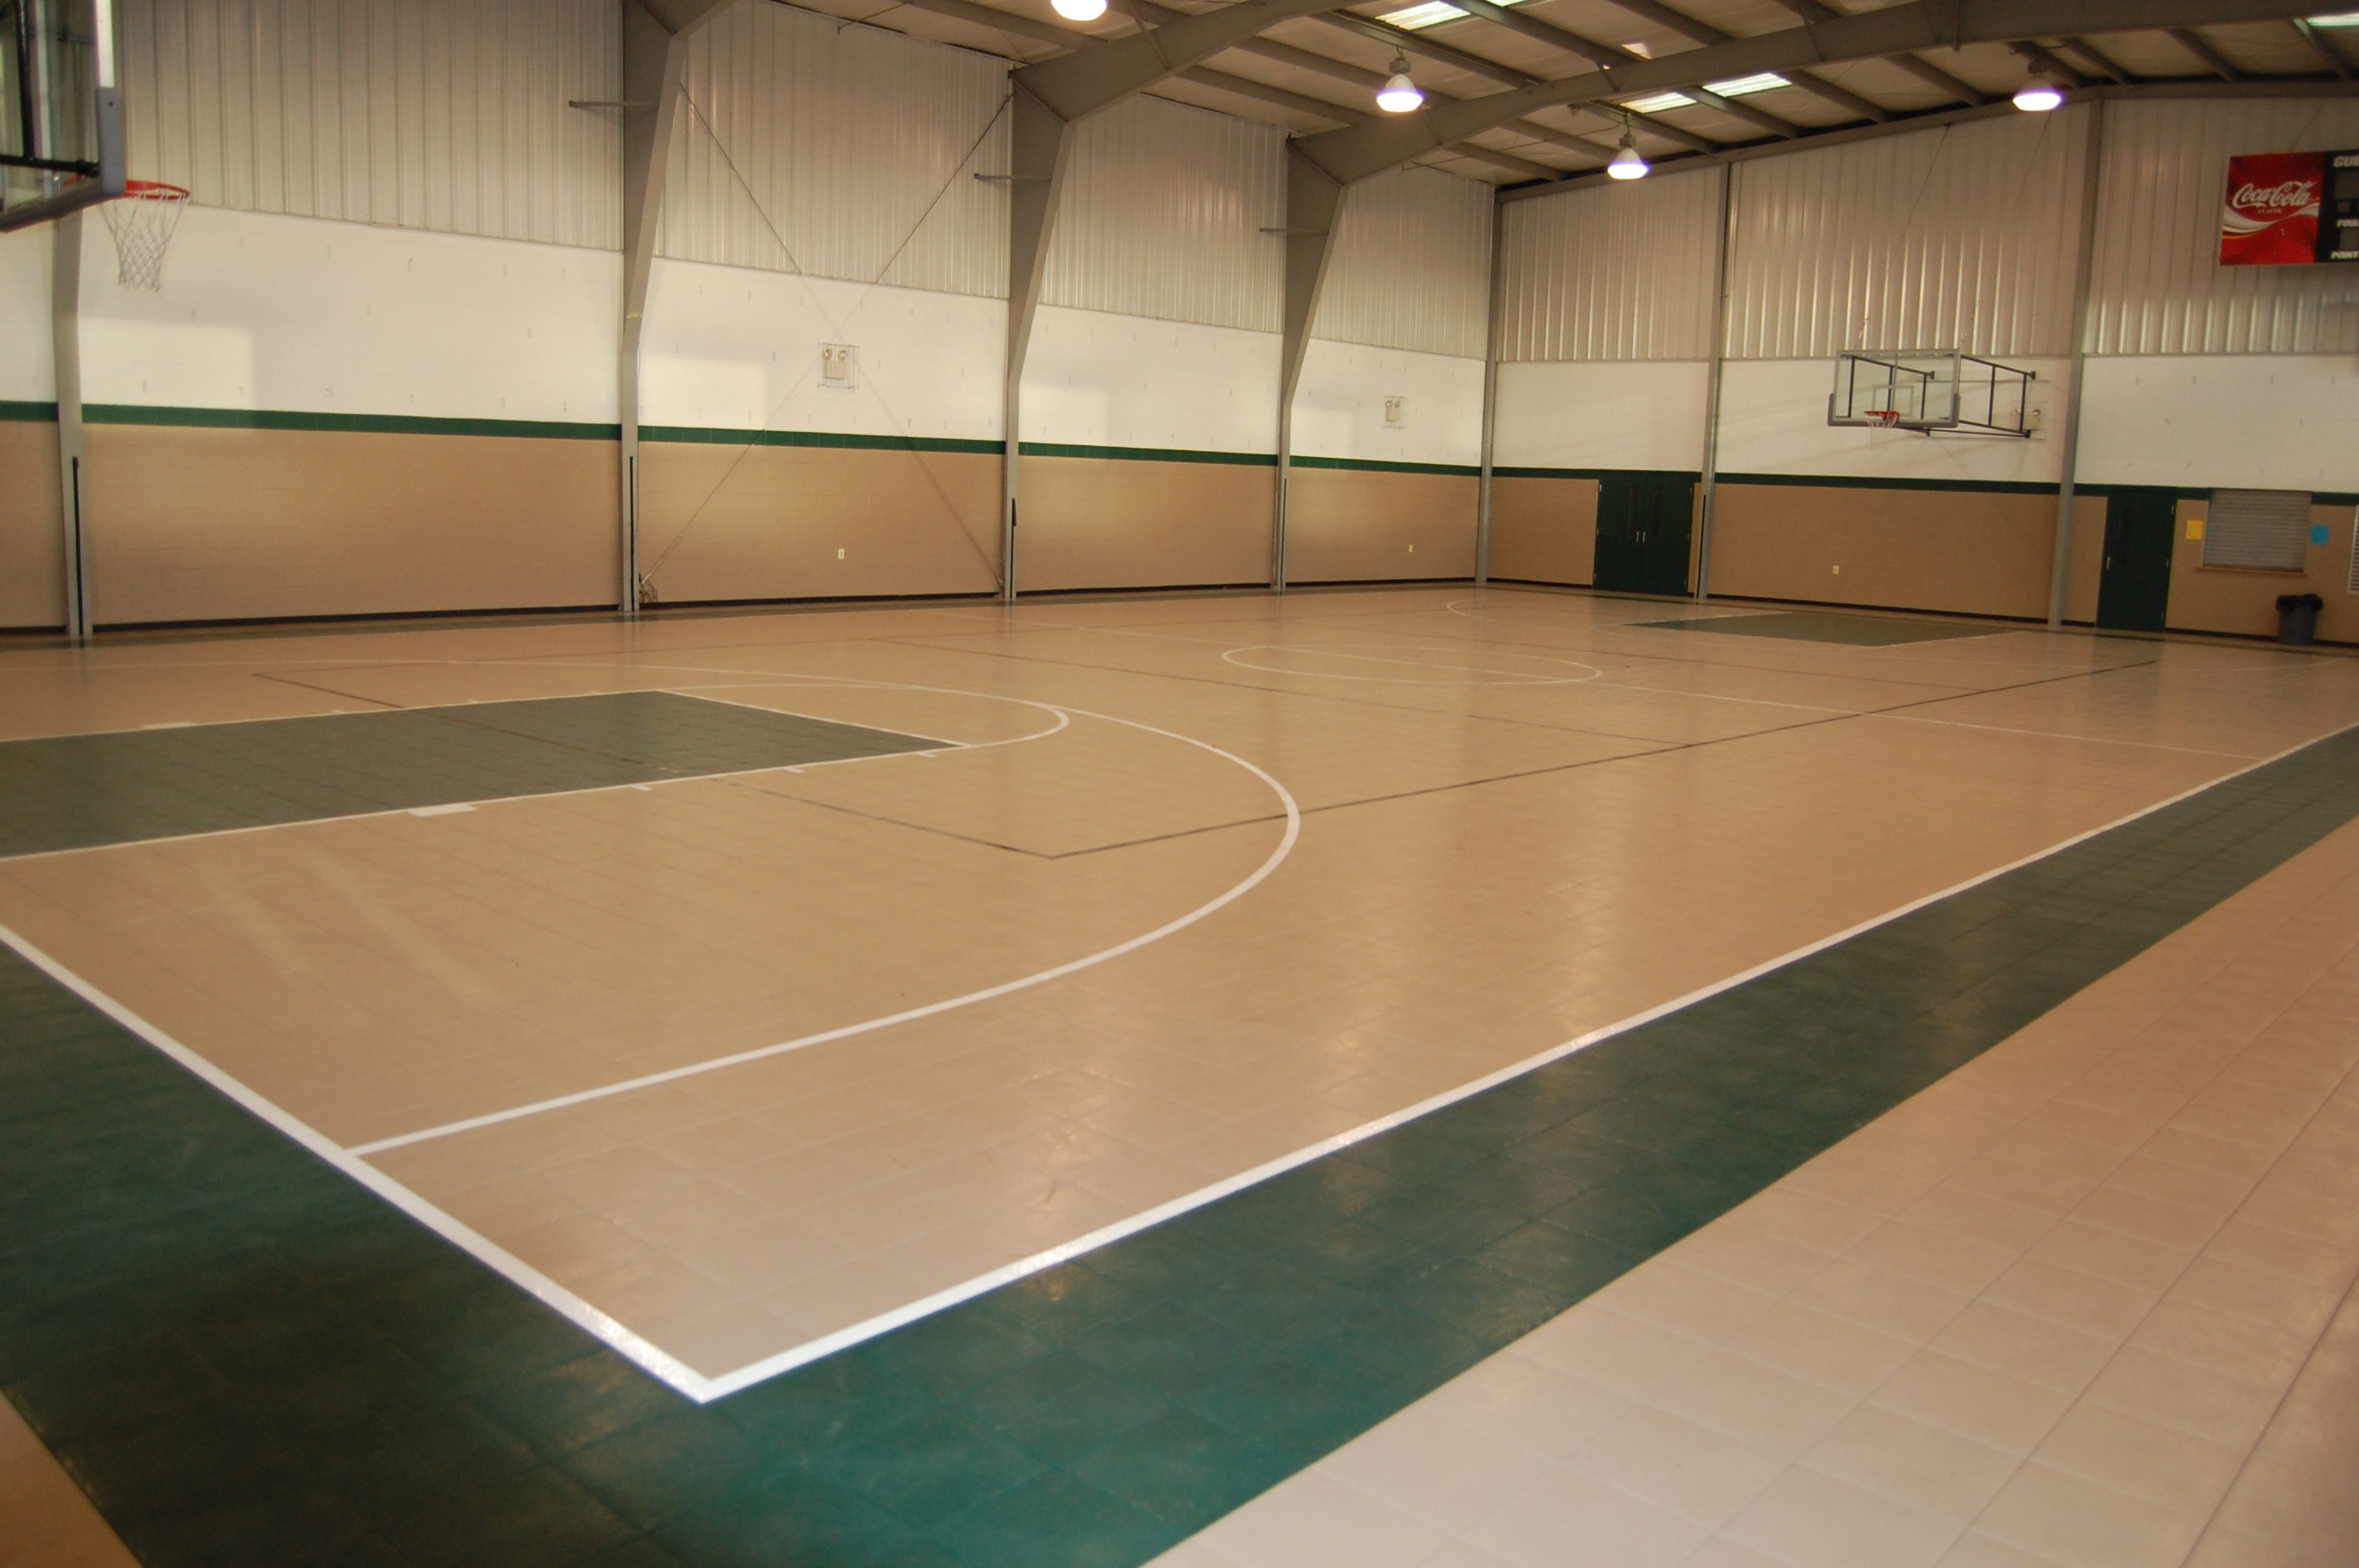 Sport flooring Kansas City by Recreation Installations